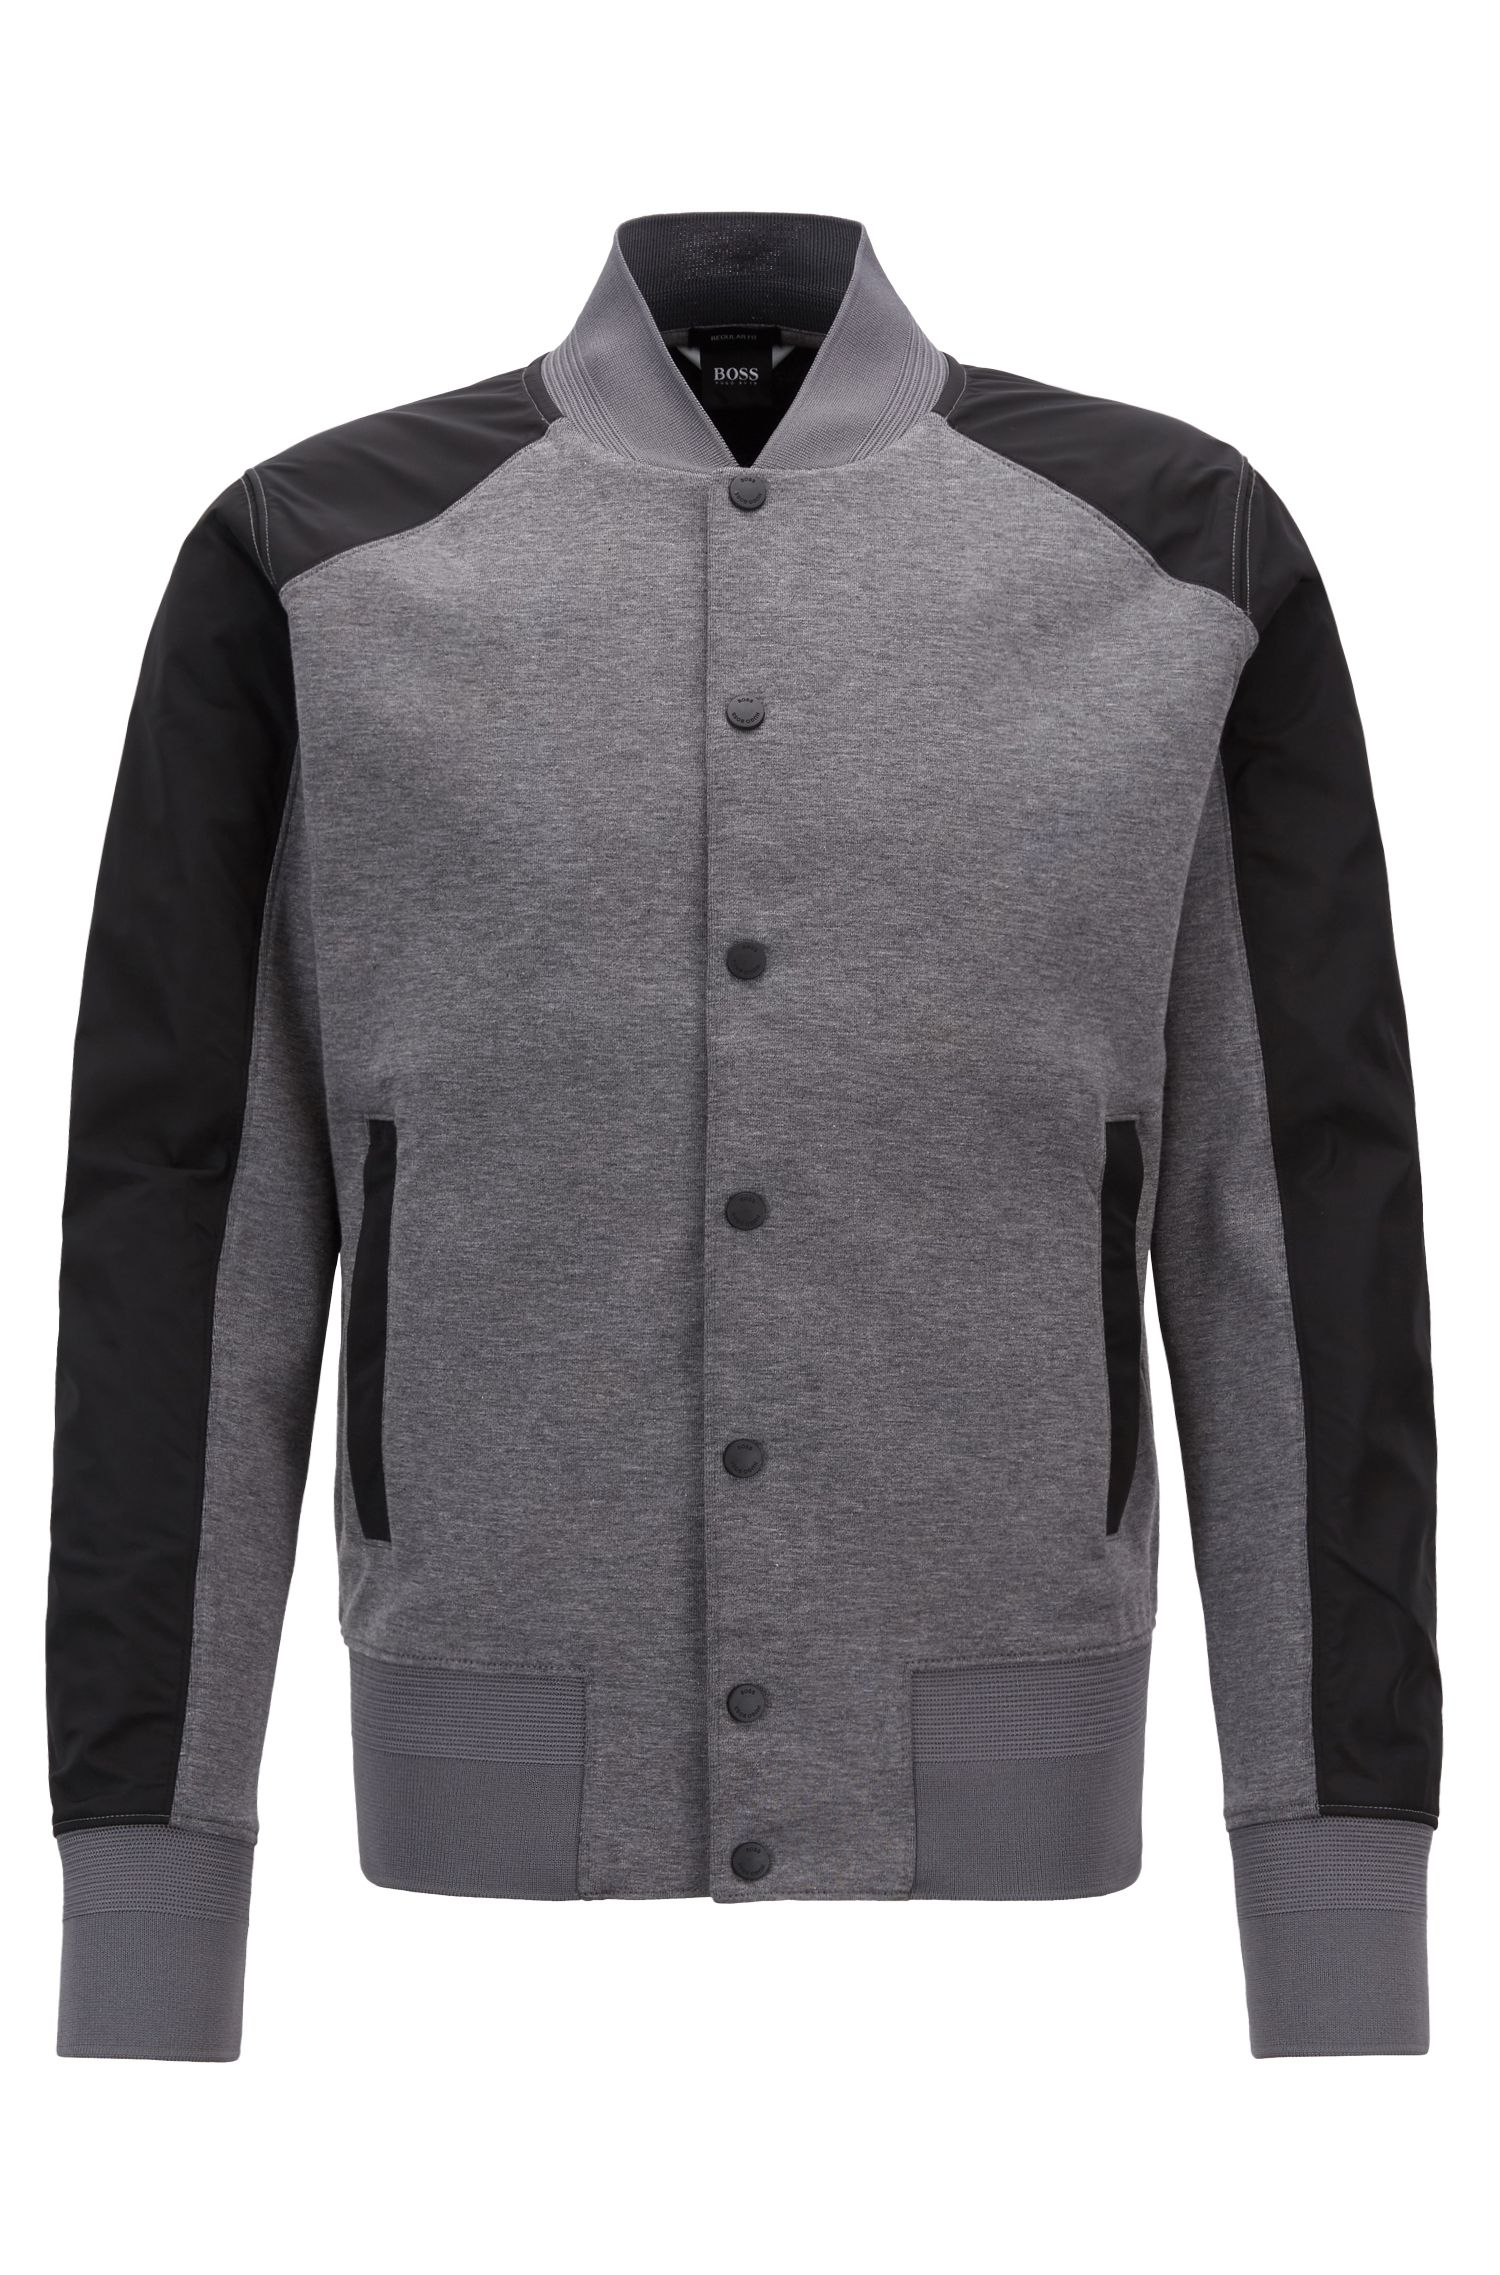 Varsity-style jacket with press-stud front closure, Grey